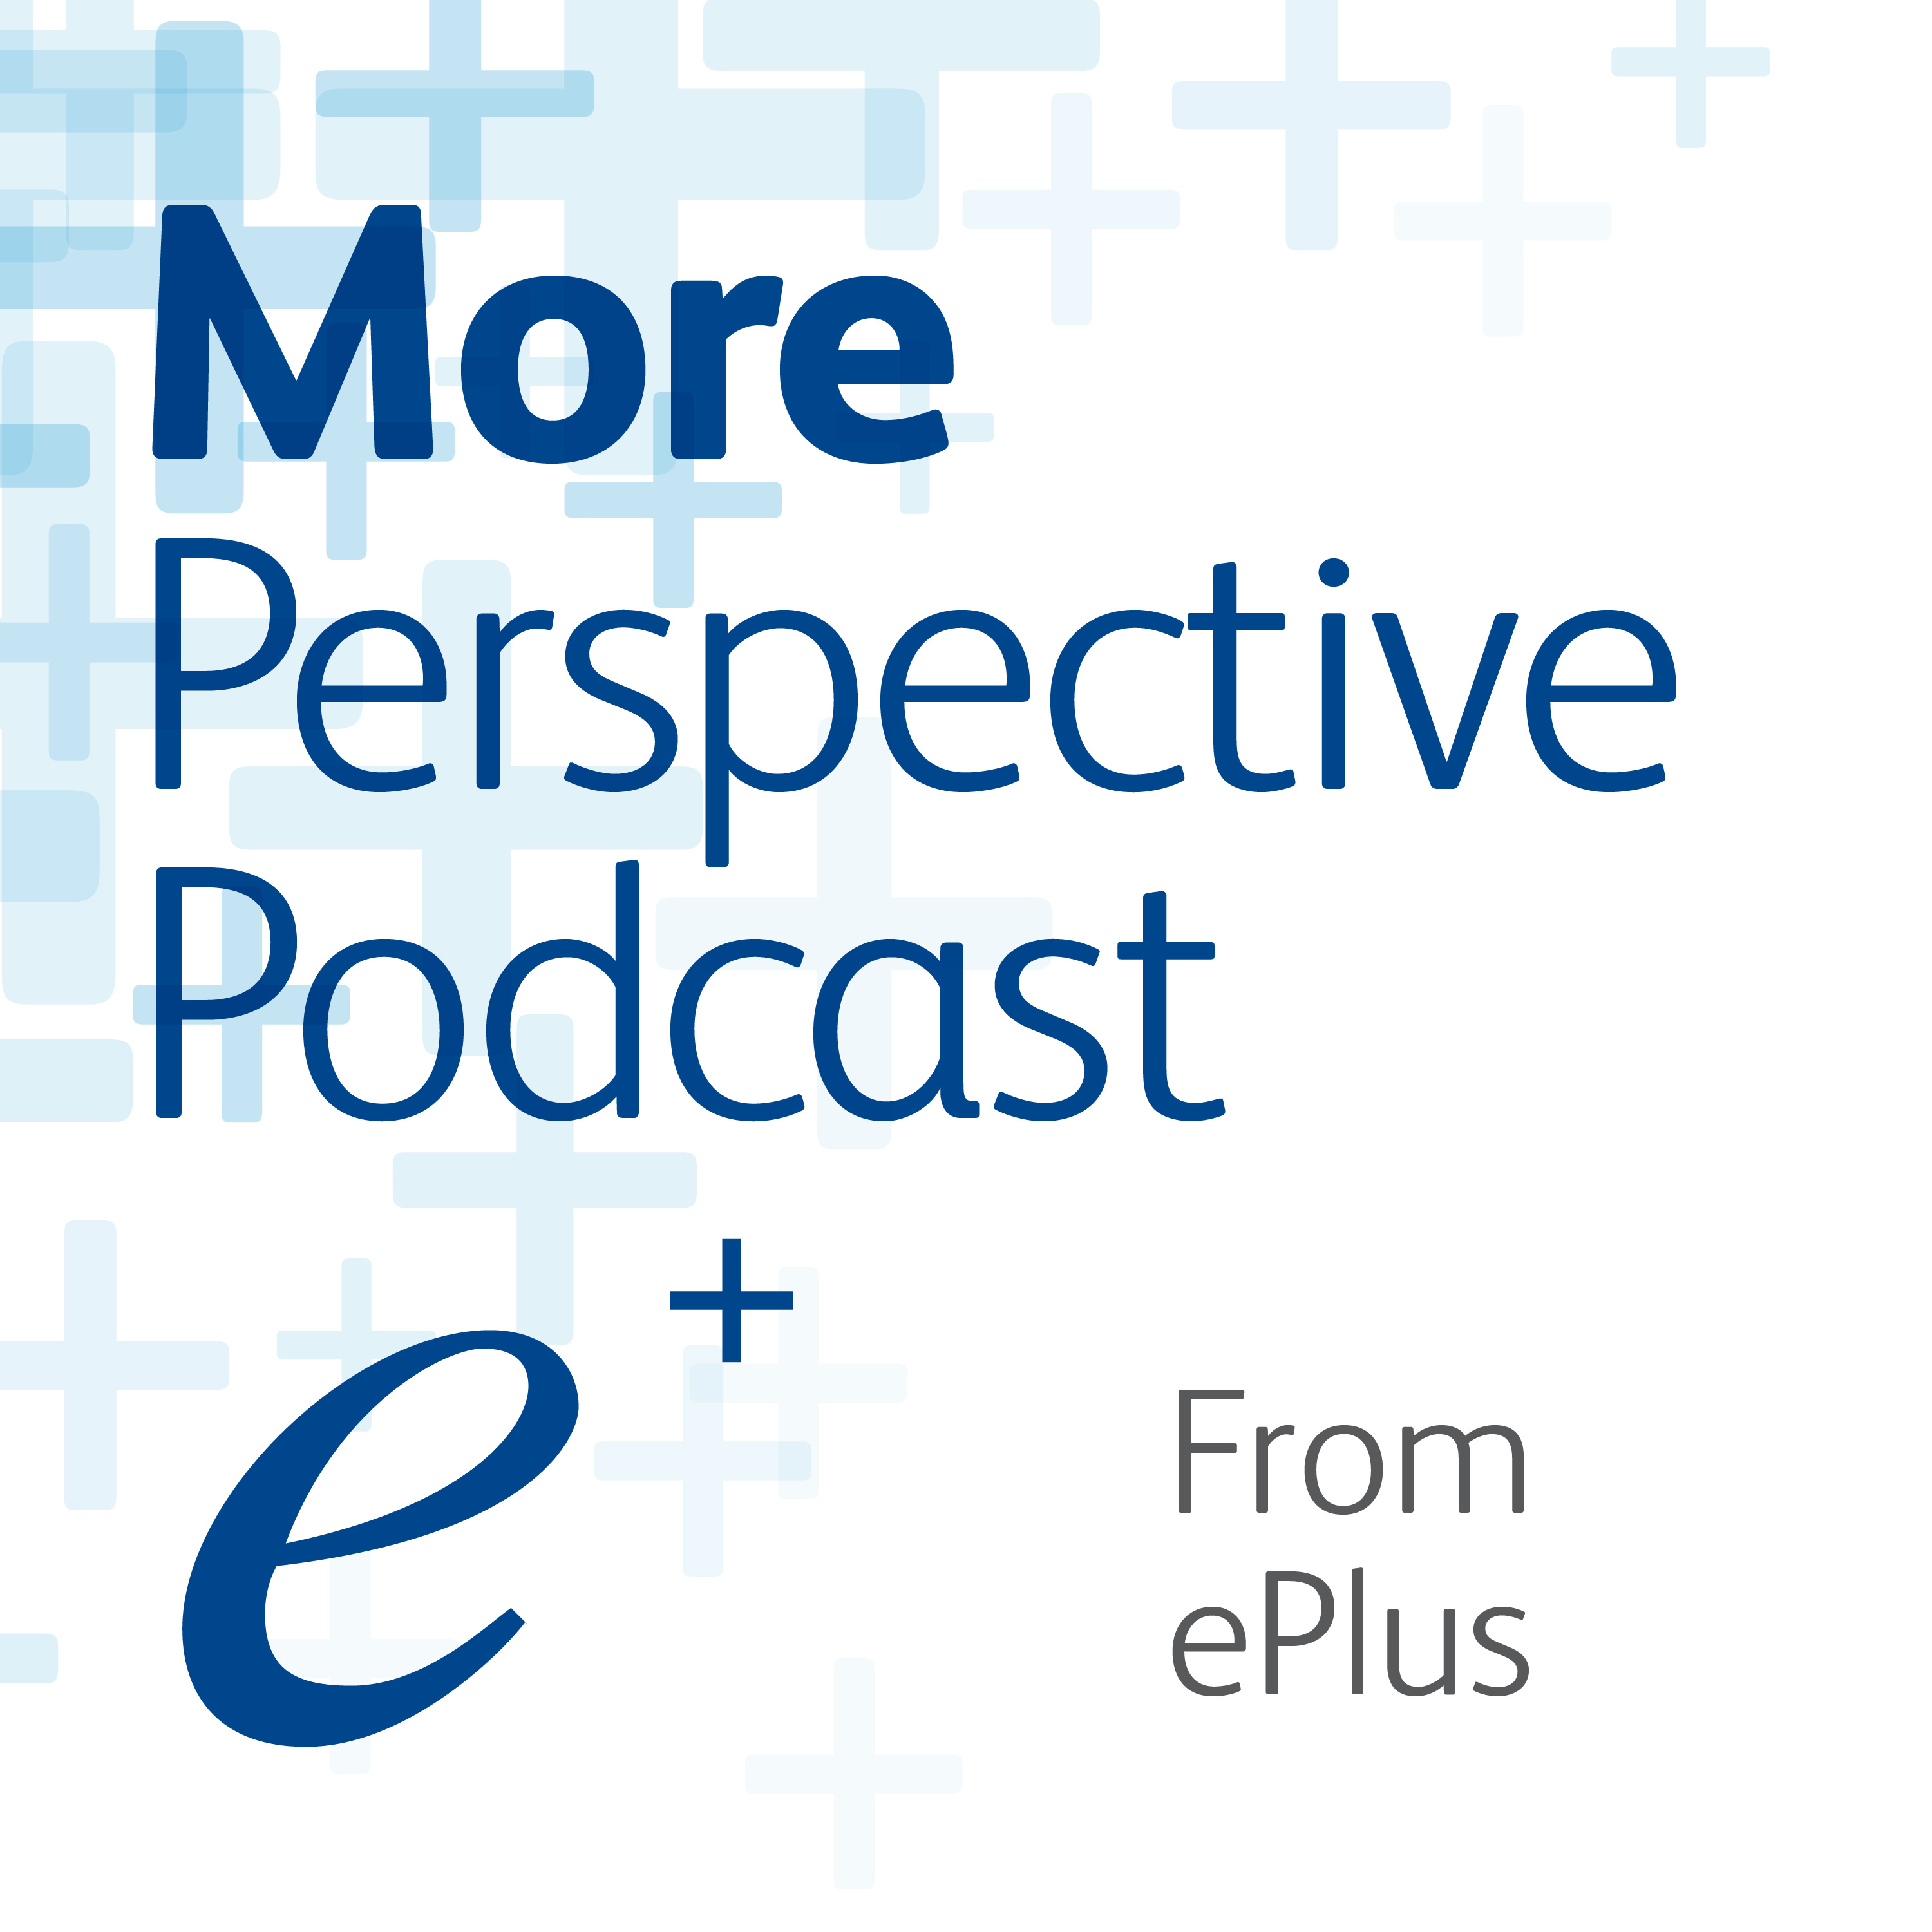 More Perspective Podcast show art